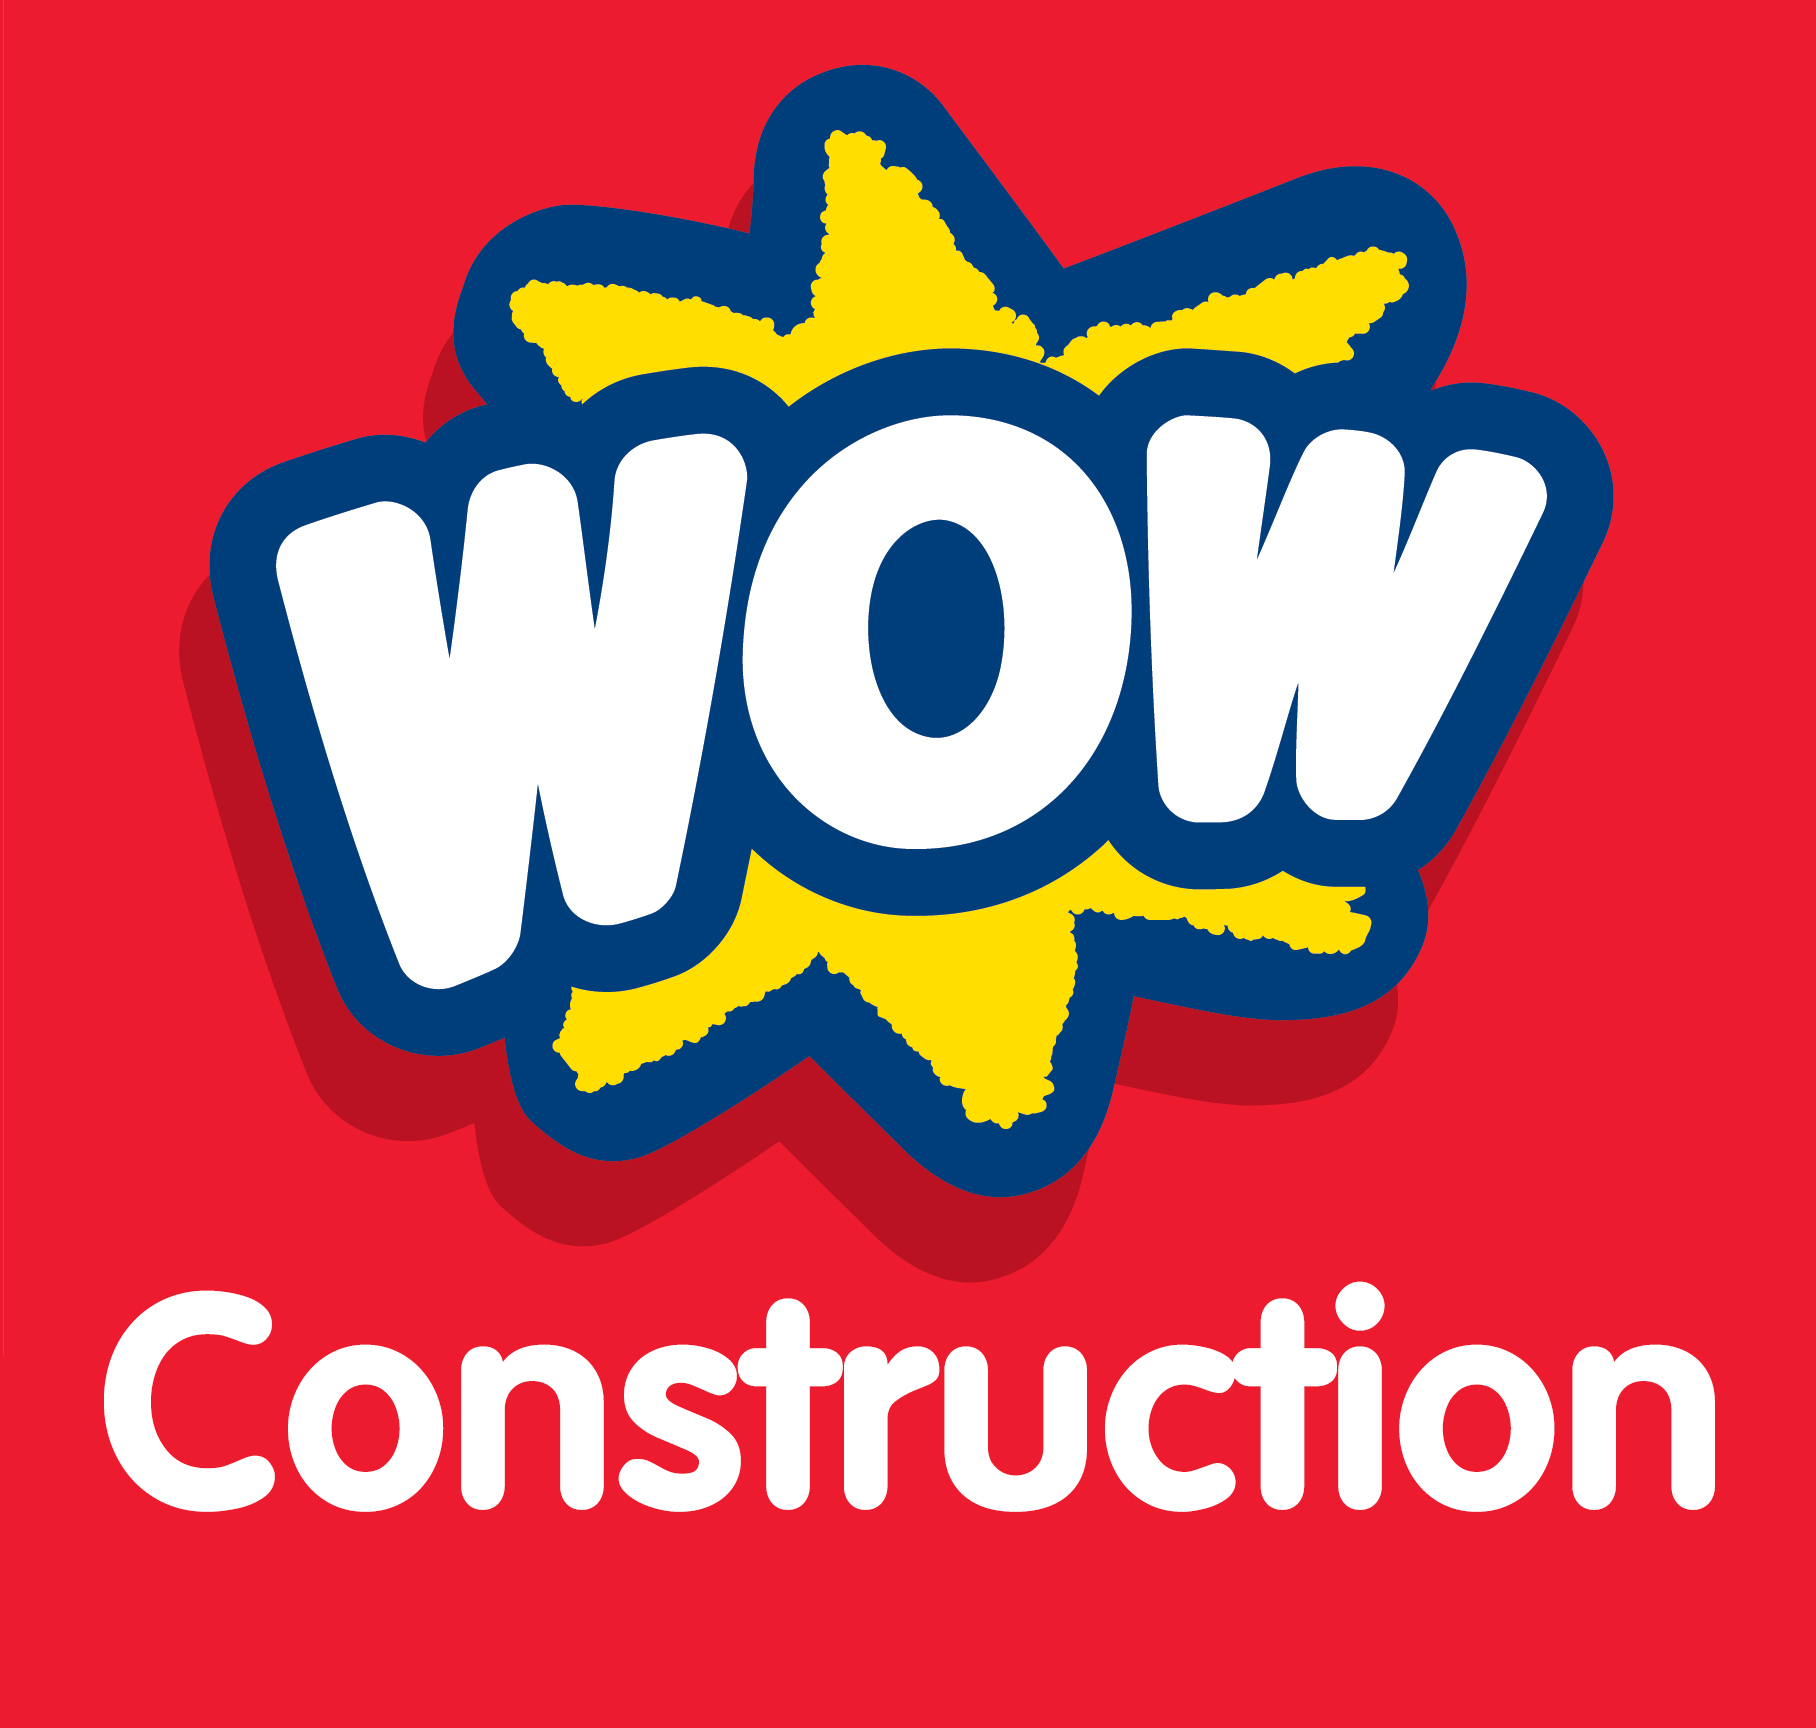 Wow Construction